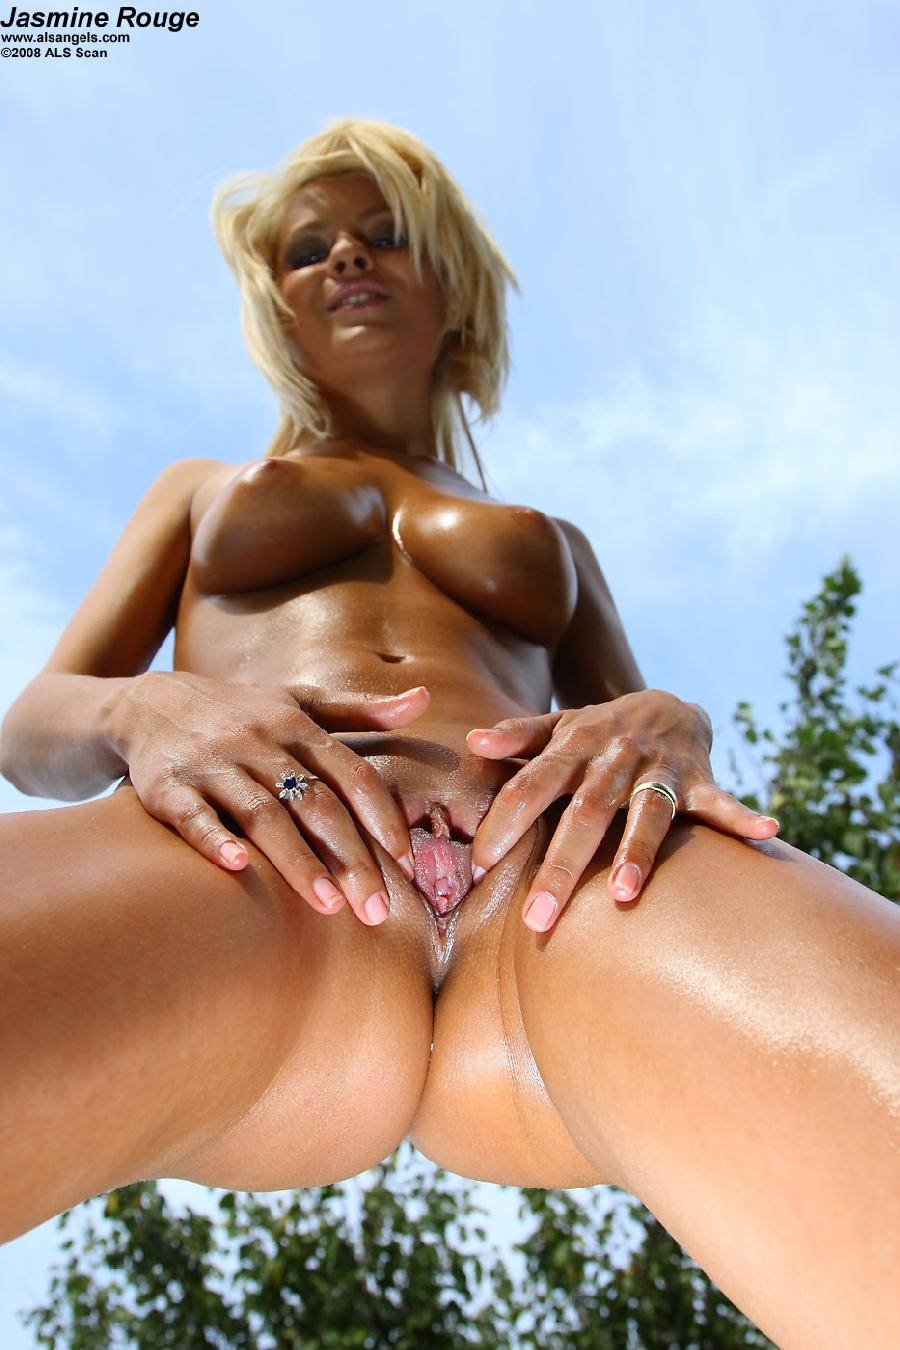 Blue-eyed blonde with glossy body - Jasmine Rouge - 7